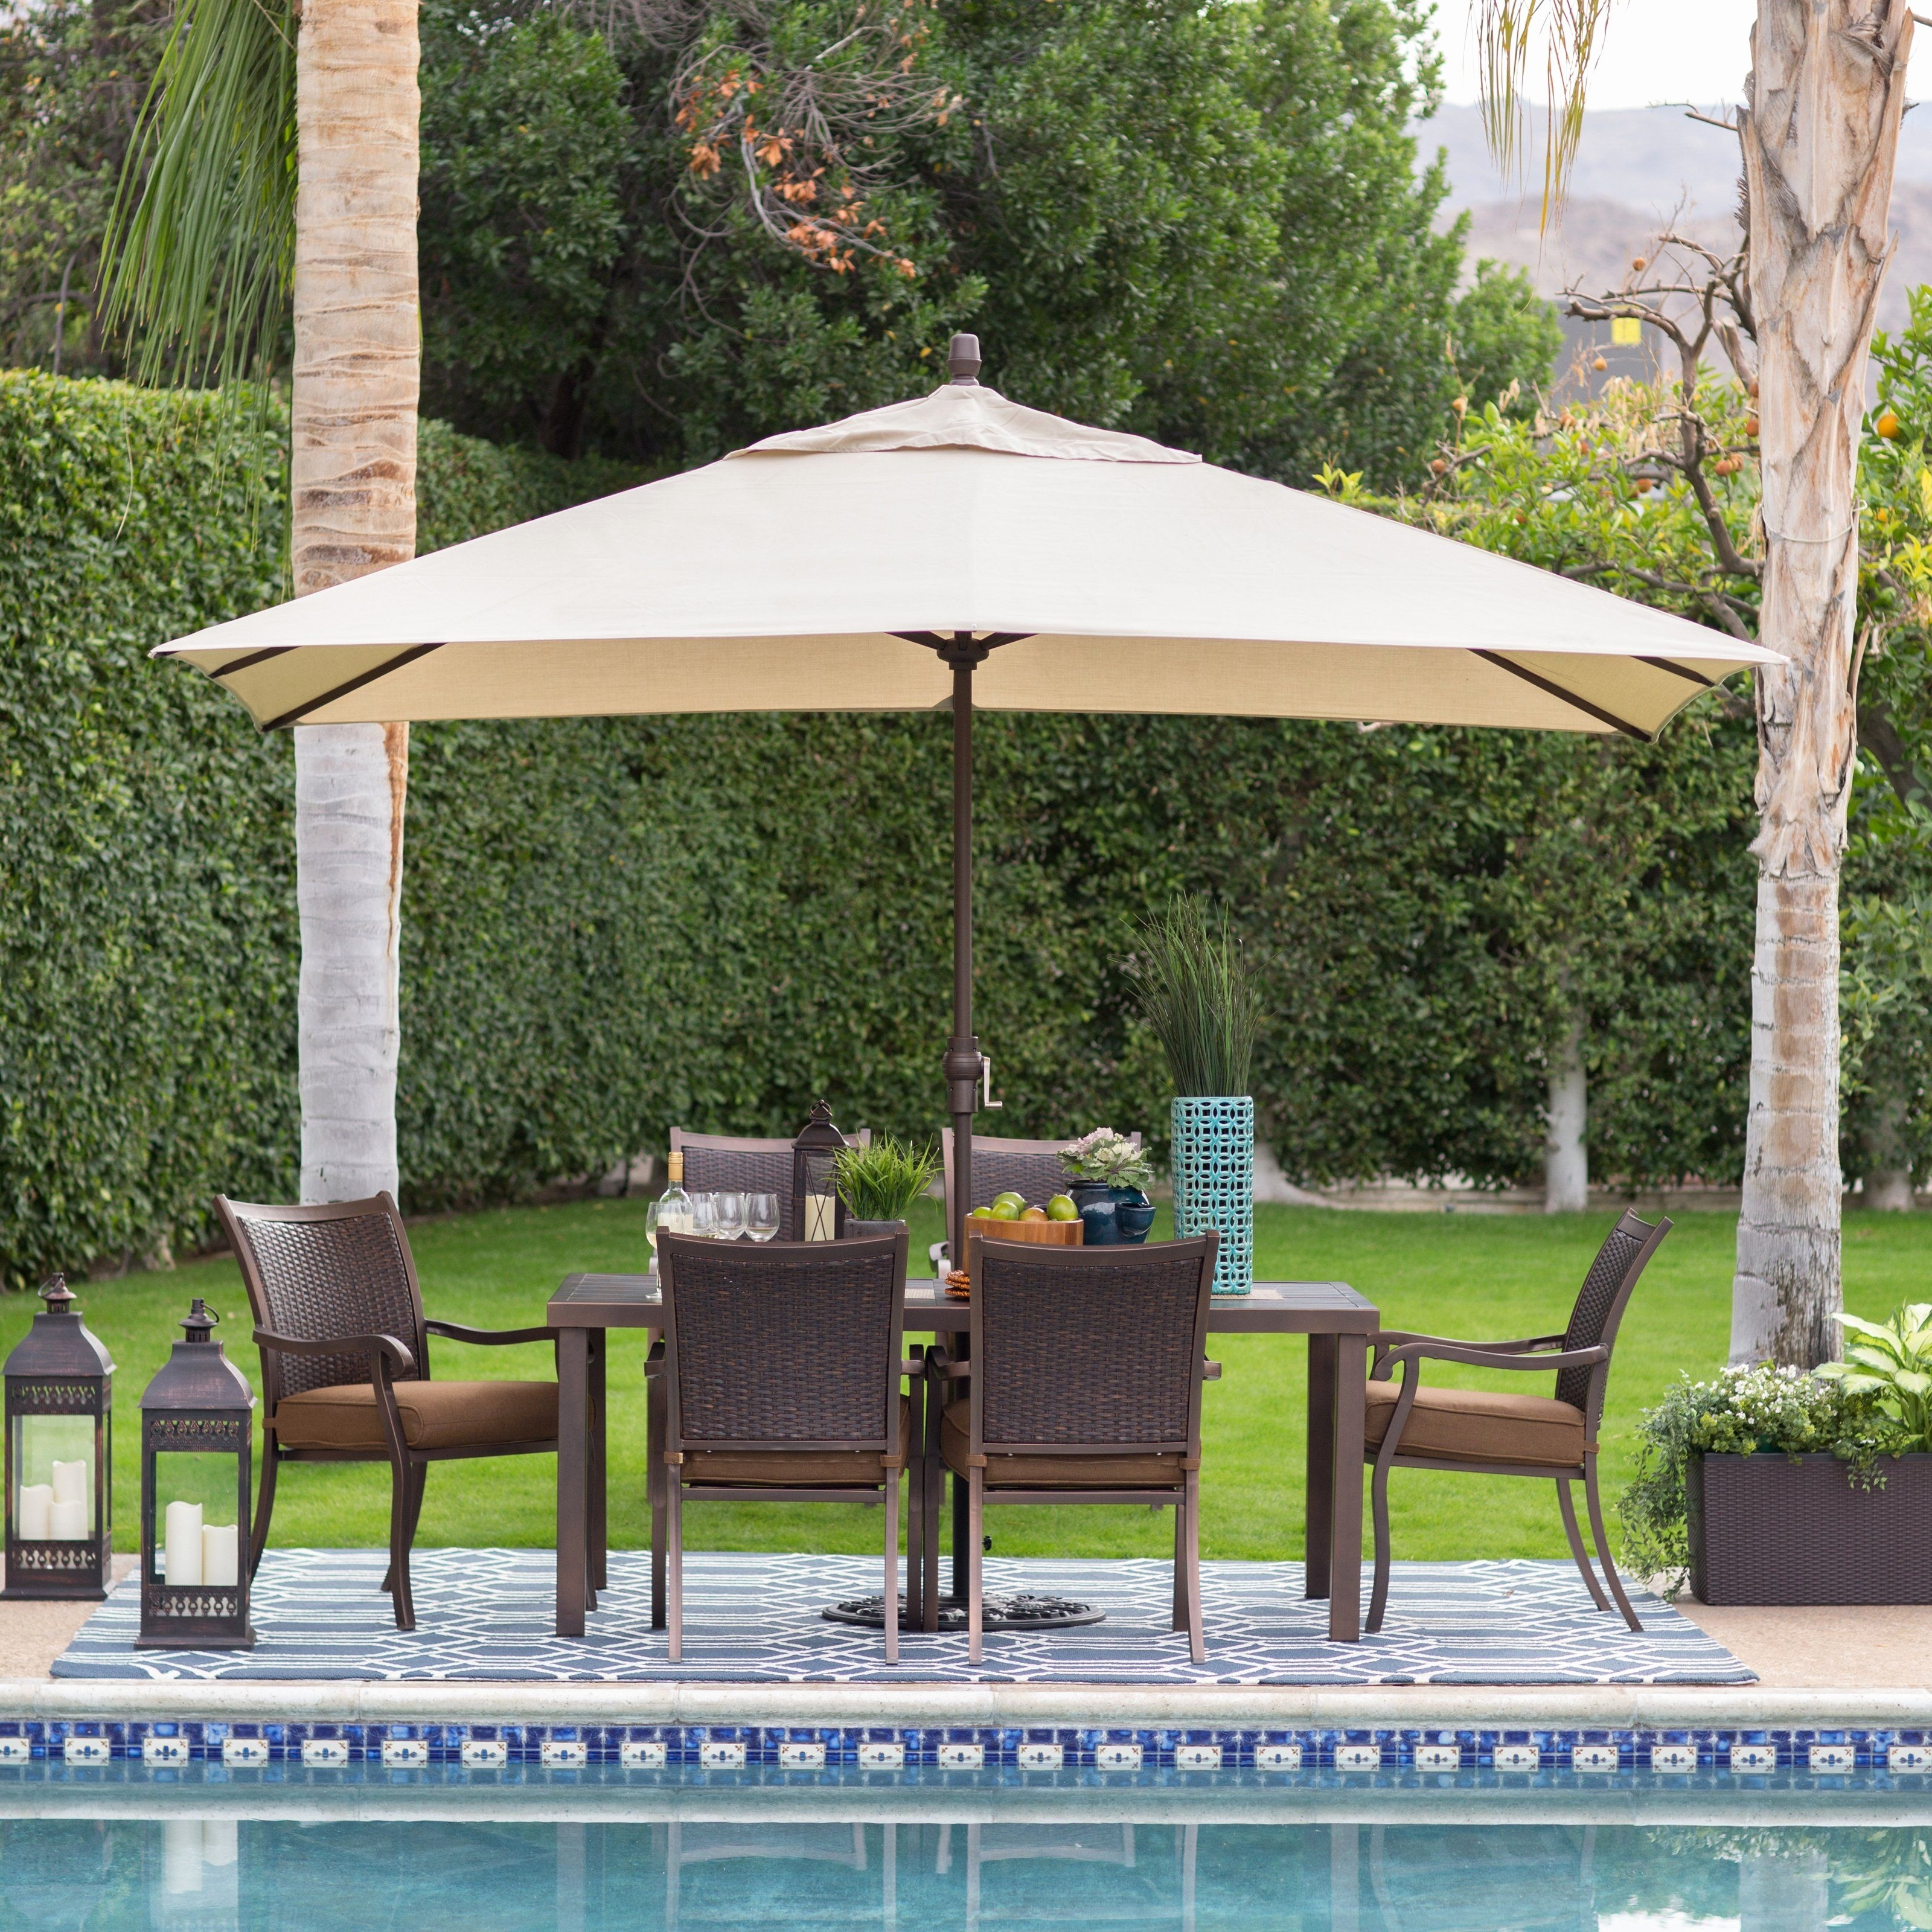 Recent 11 Cantilever Patio Umbrella With Base Unique 30 Fresh 11 Ft Patio Intended For 11 Foot Patio Umbrellas (View 15 of 20)